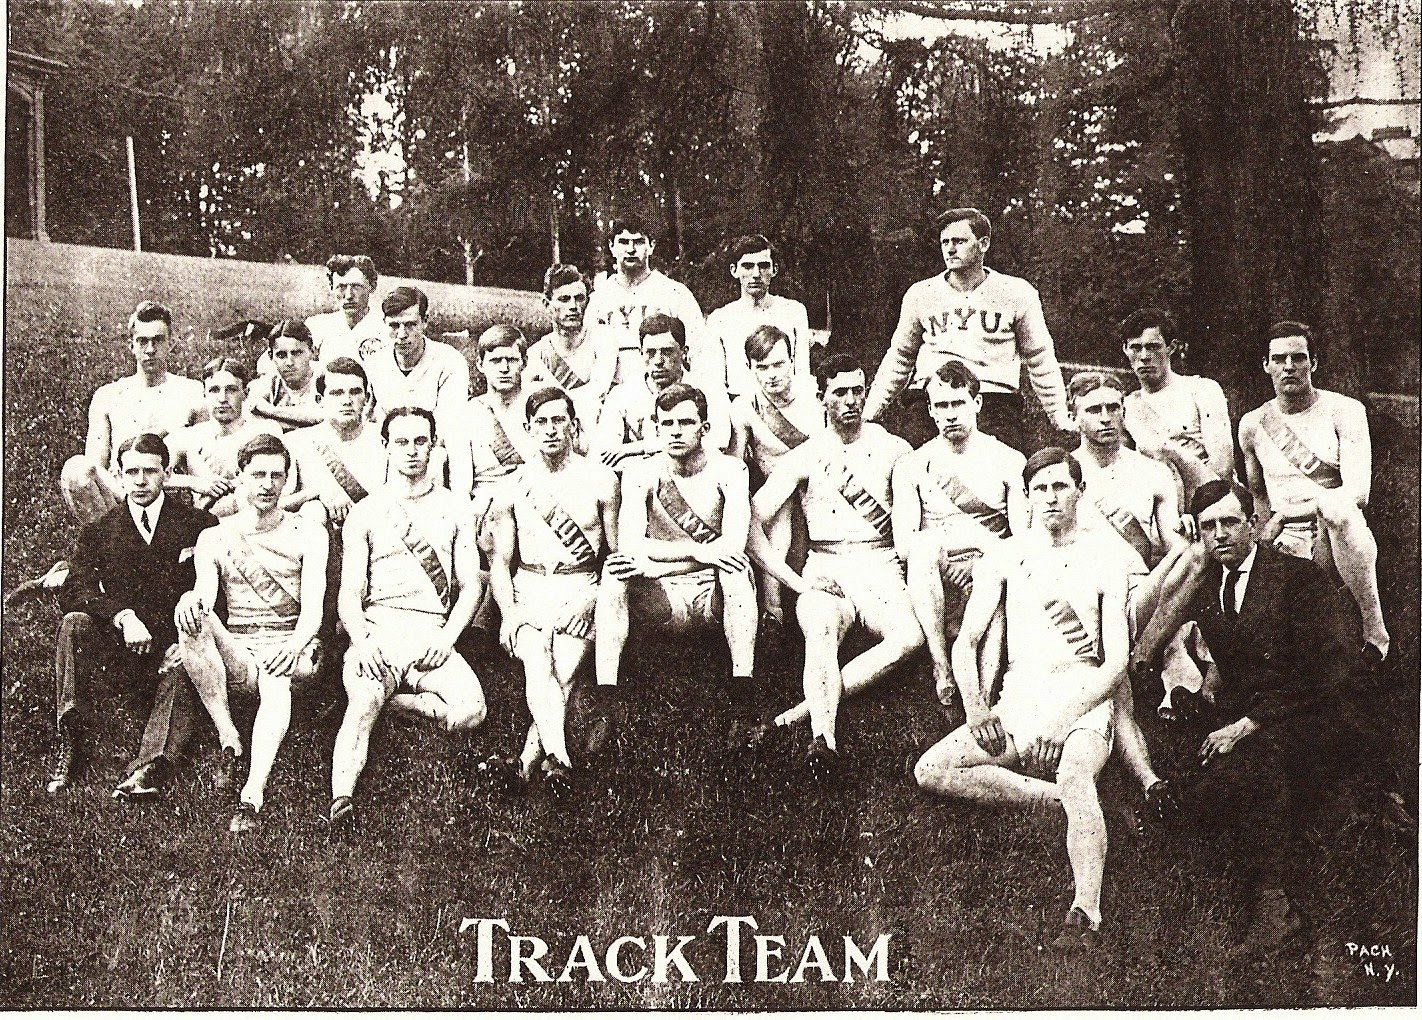 Joseph A.G. Baudermann NYU Track Team 1905